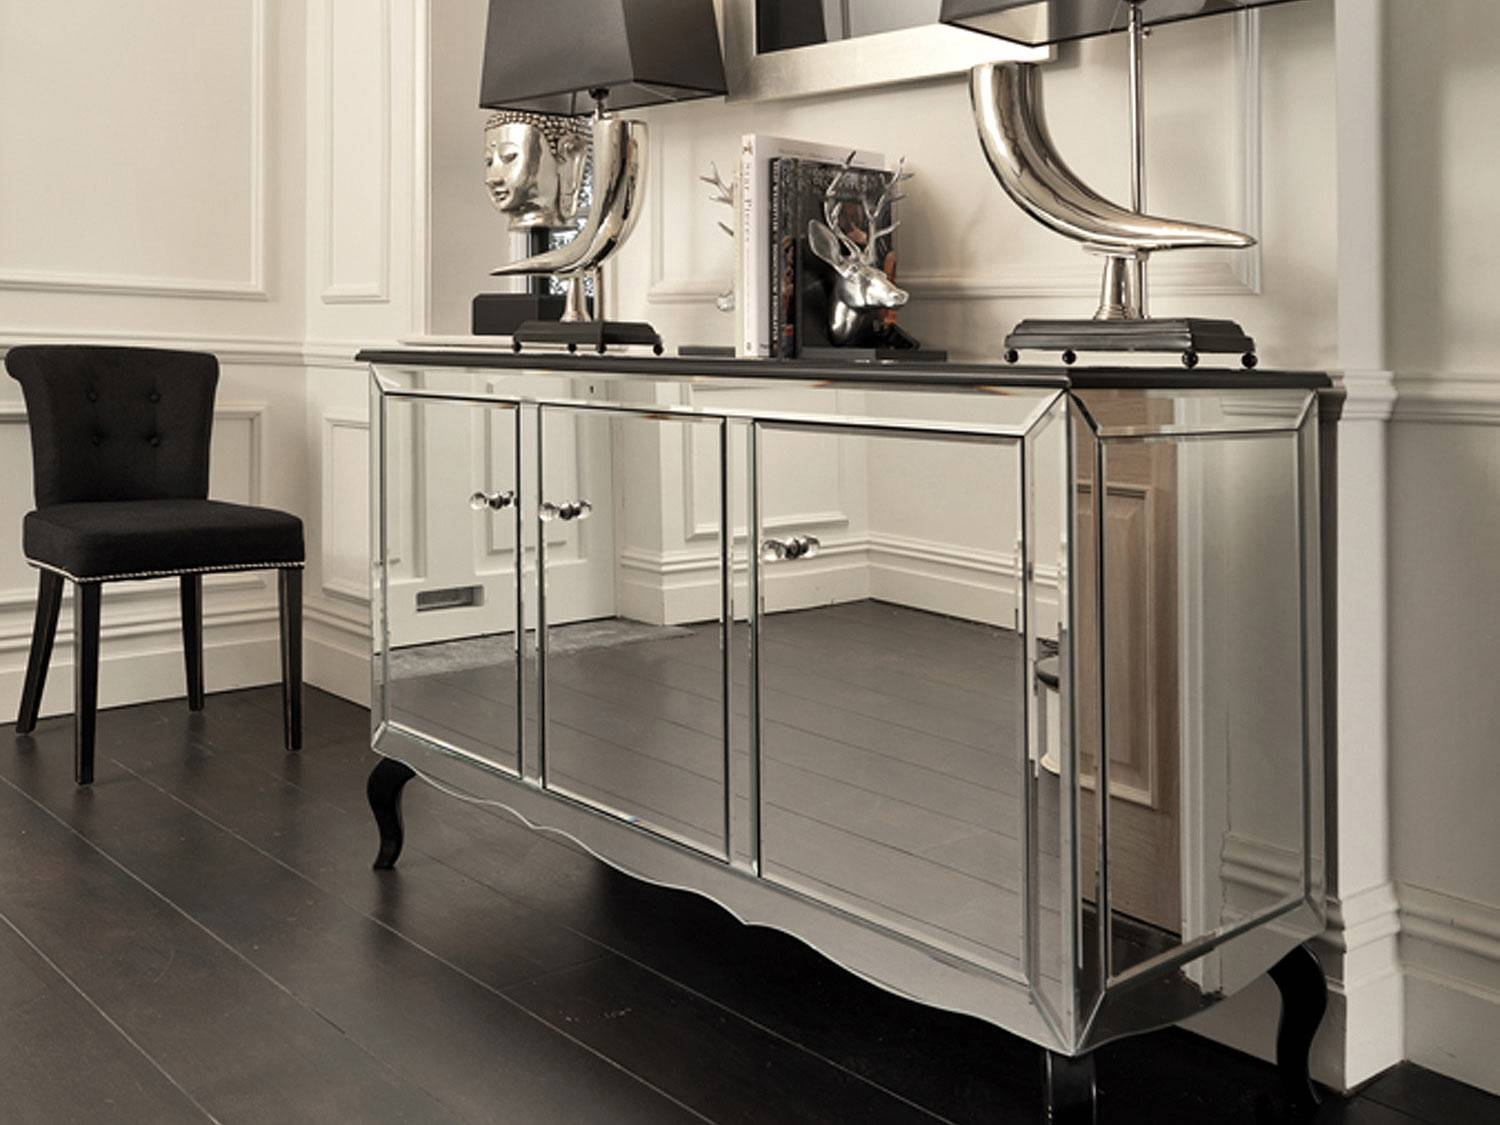 Black Orchid | Mirrored Sideboard | Black Gloss Cabinet Throughout Mirrored Sideboards (#3 of 20)